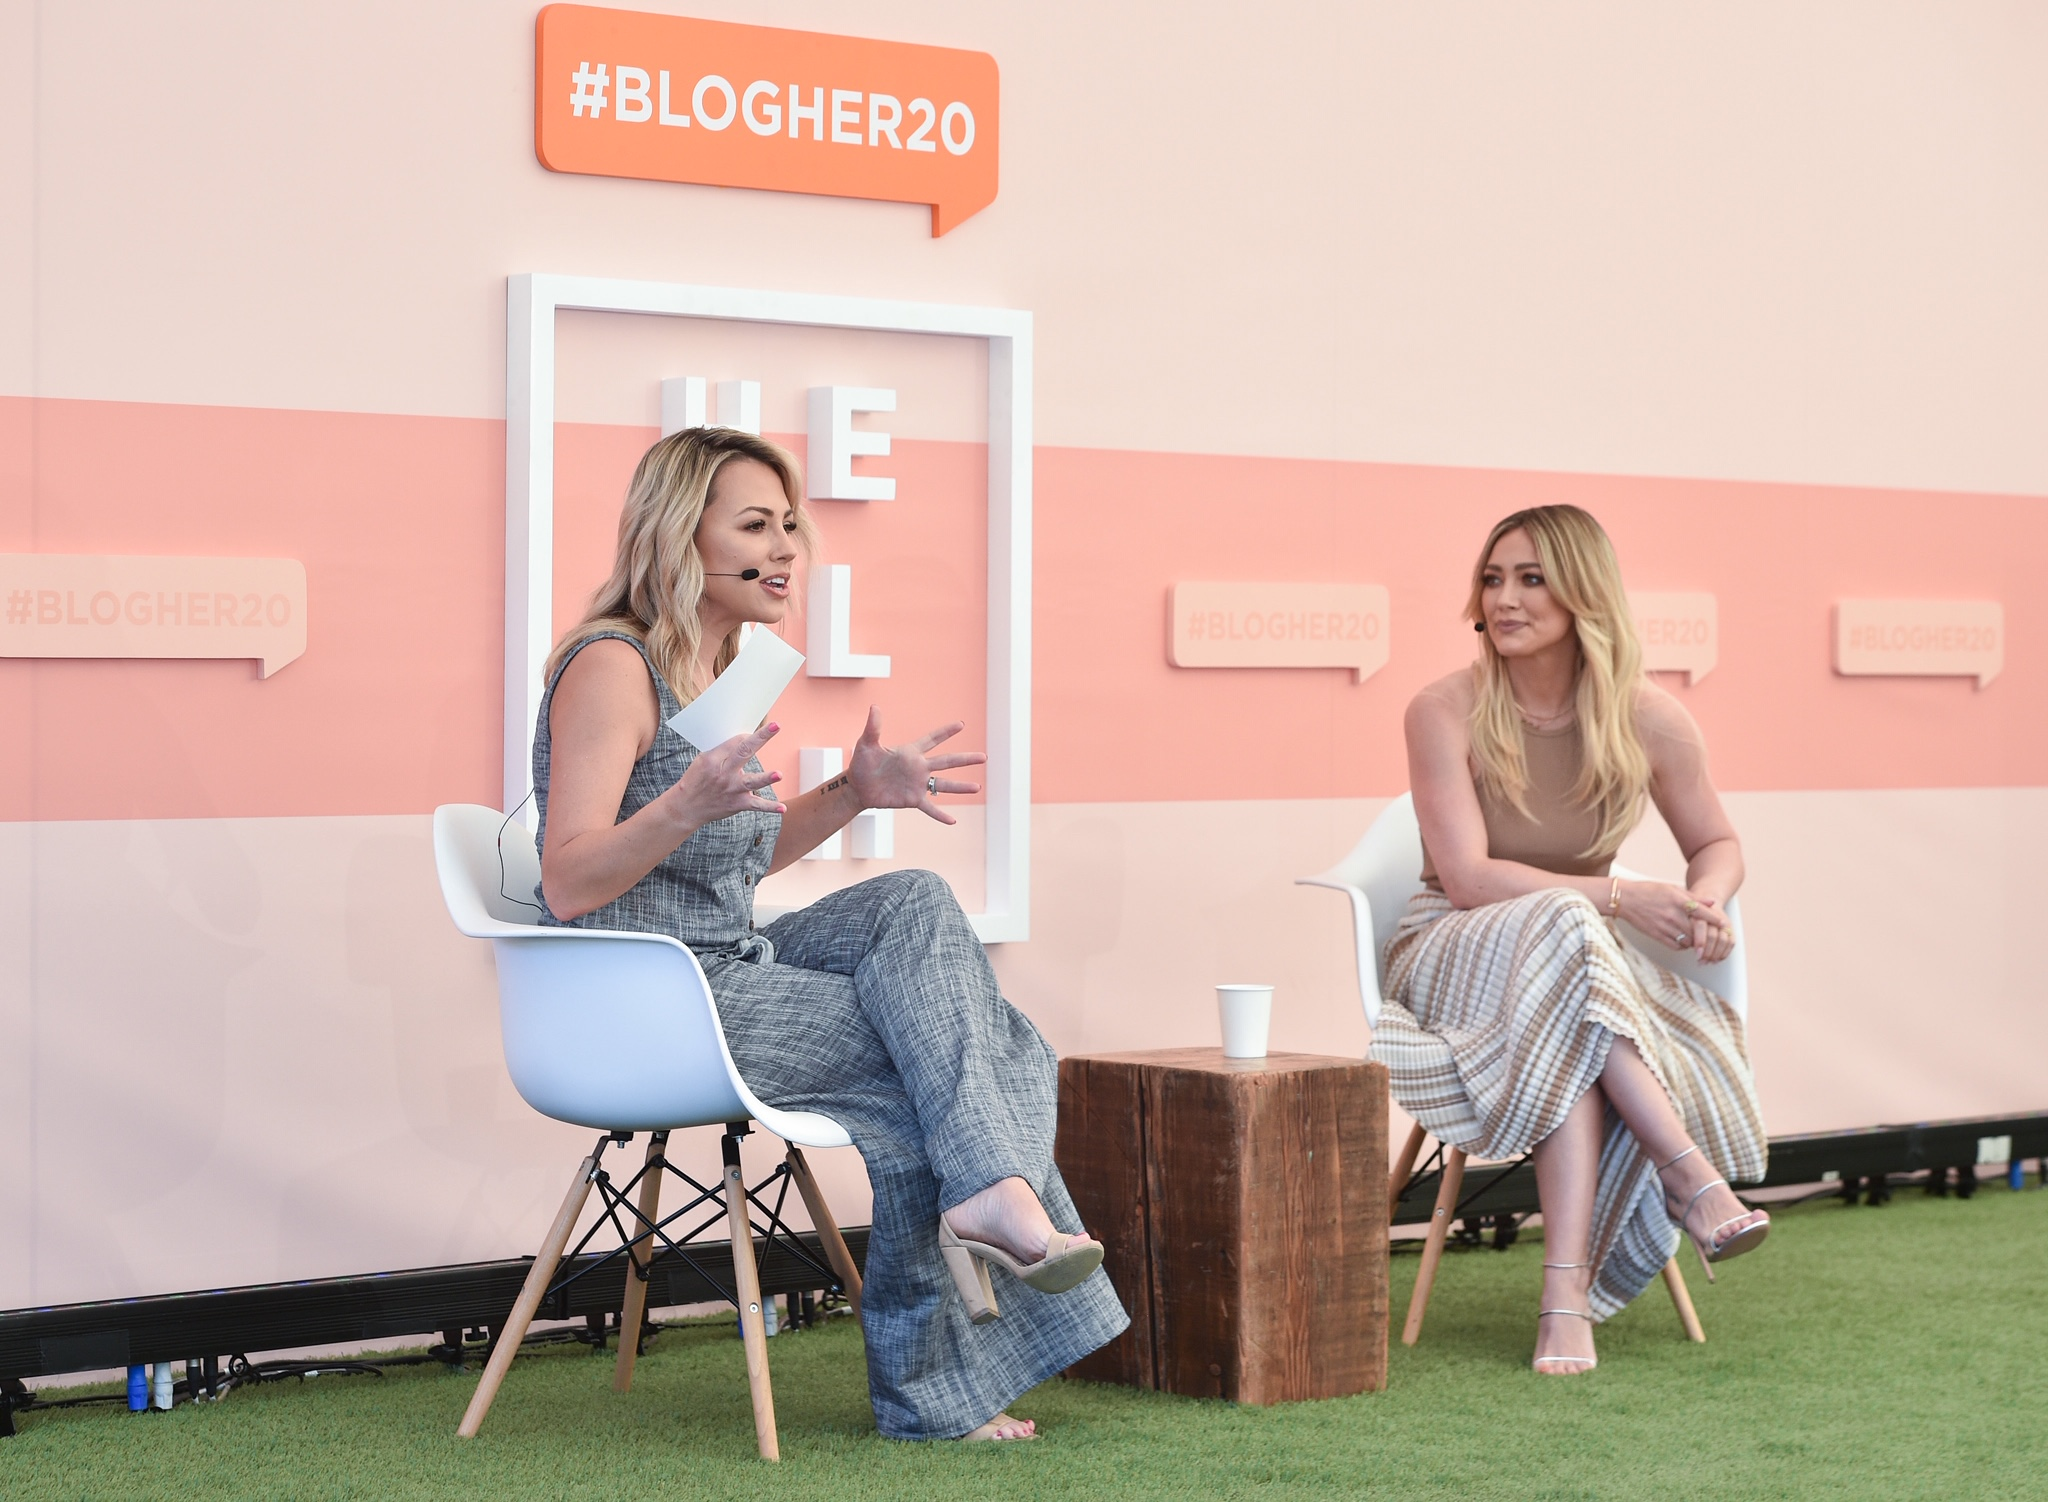 Jessica Hall and Hilary Duff at BlogHer20